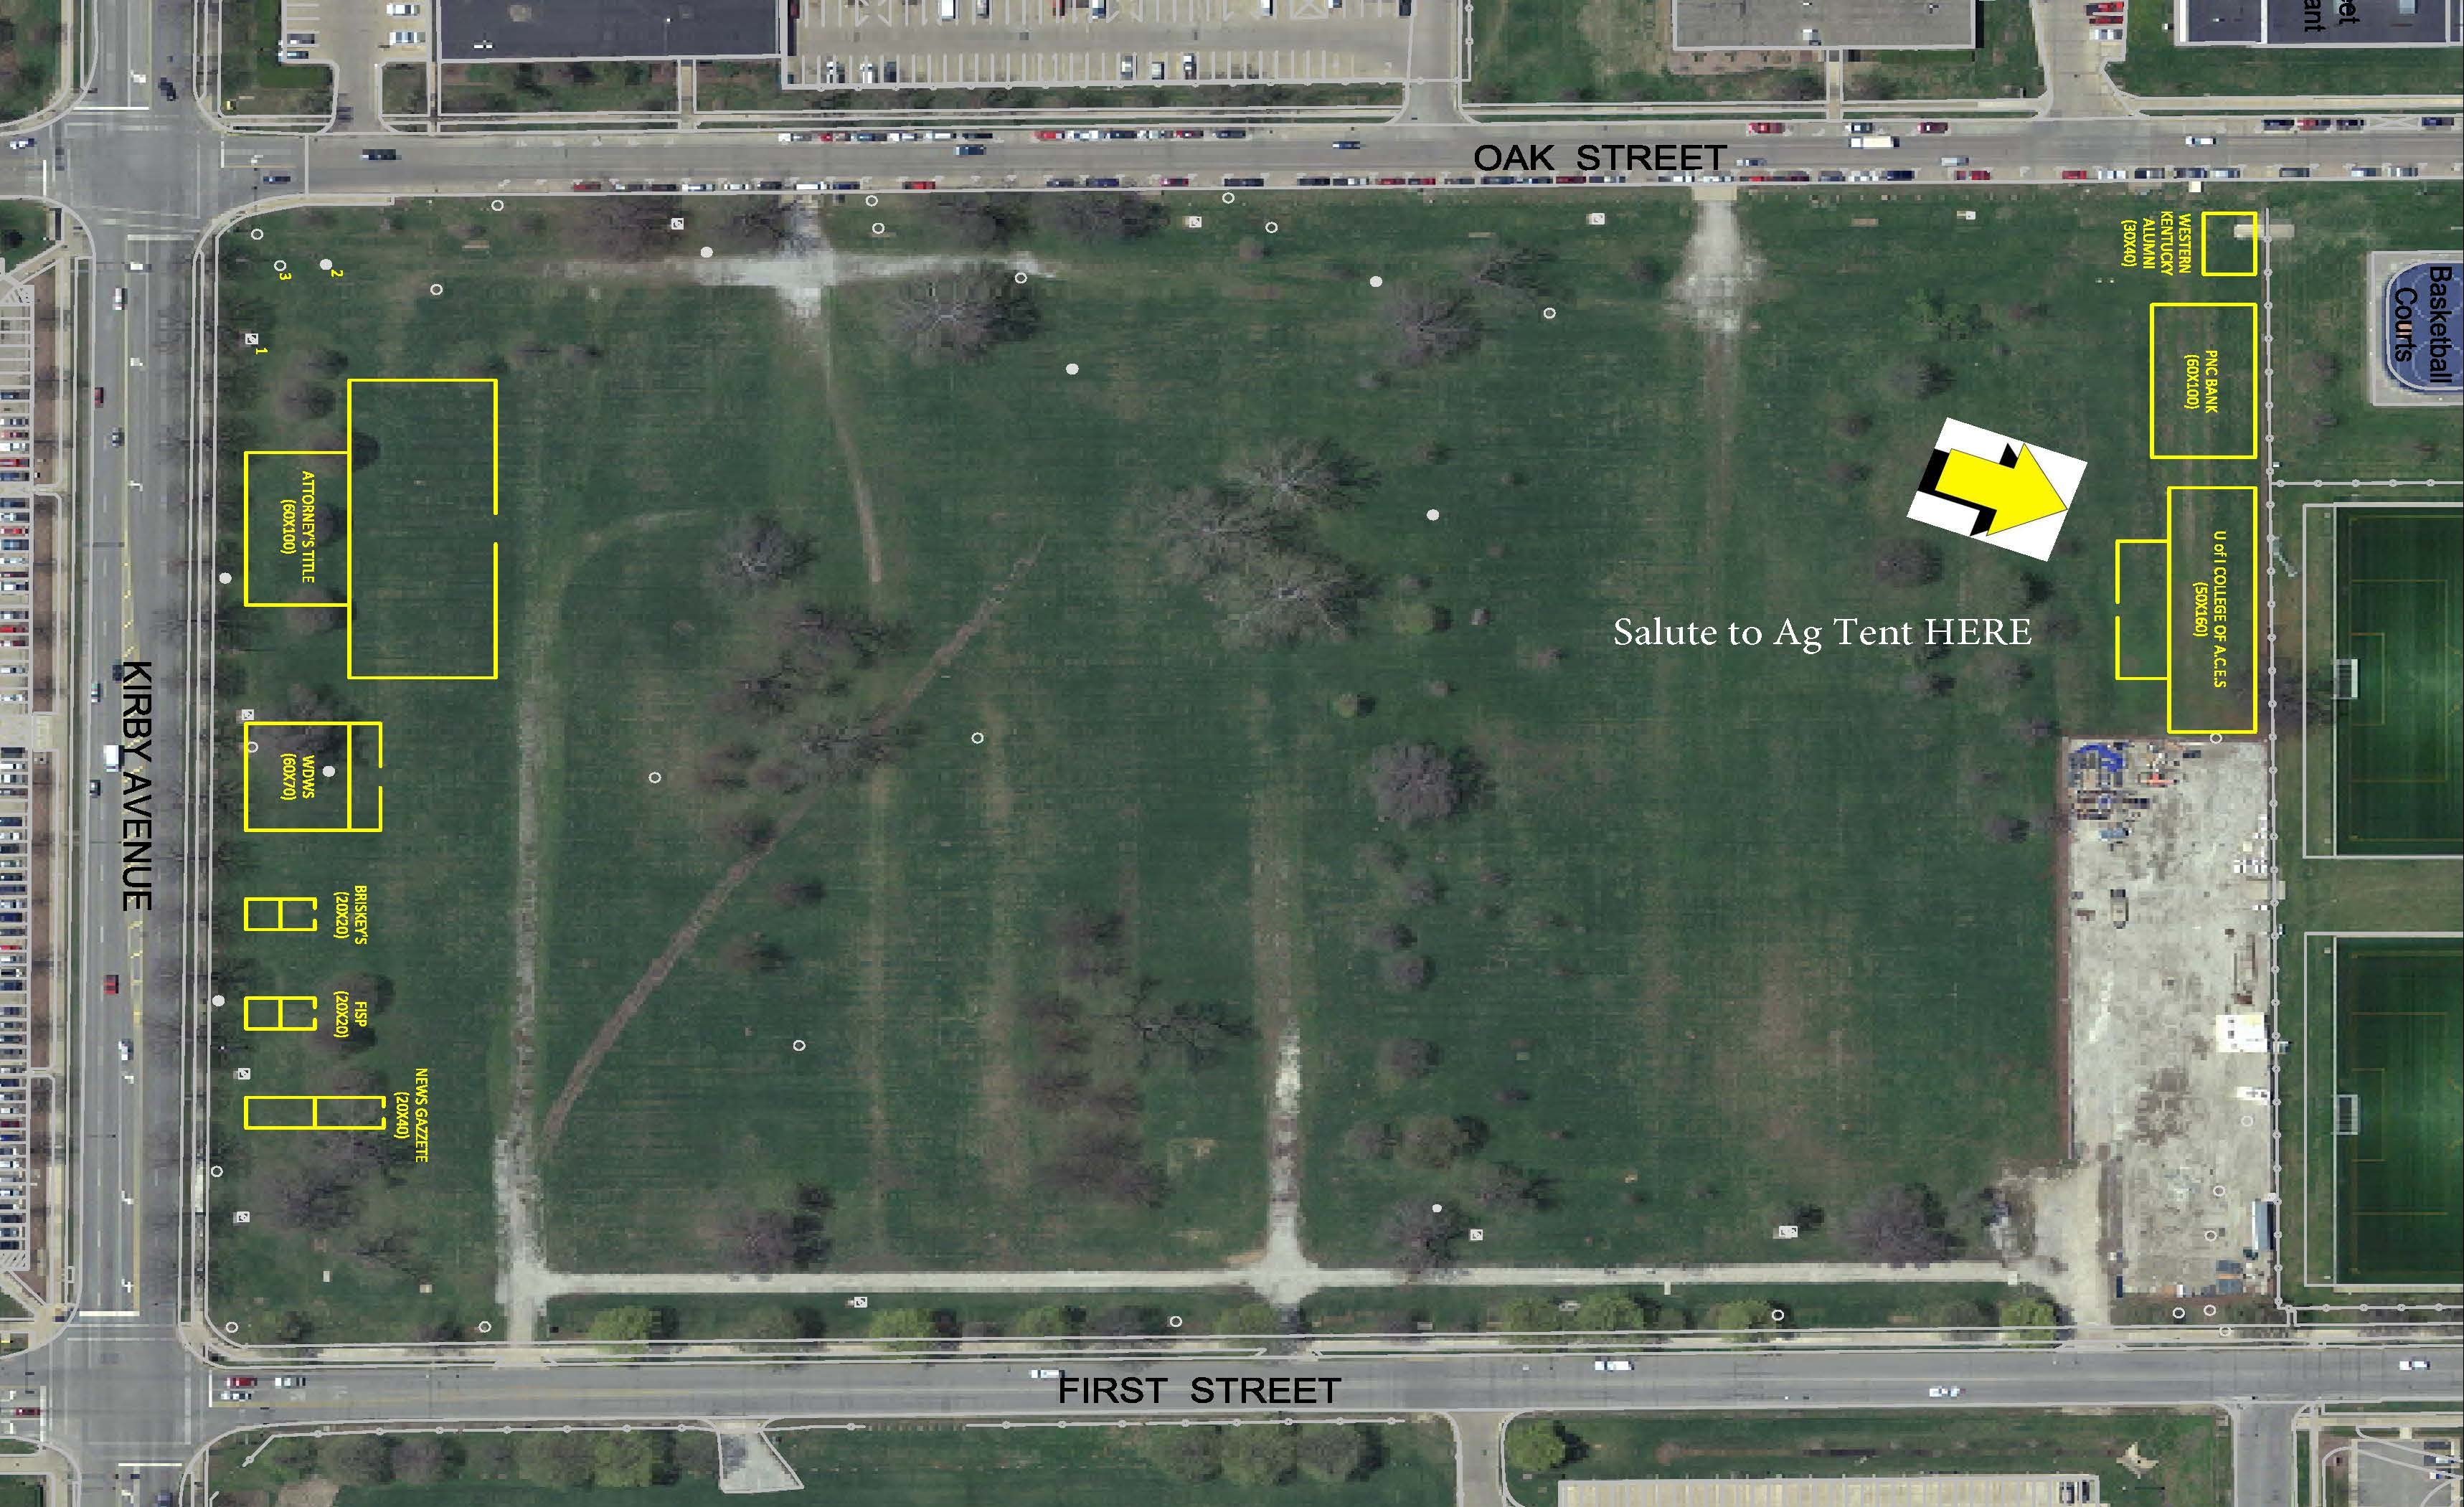 Salute to Ag Tent Location